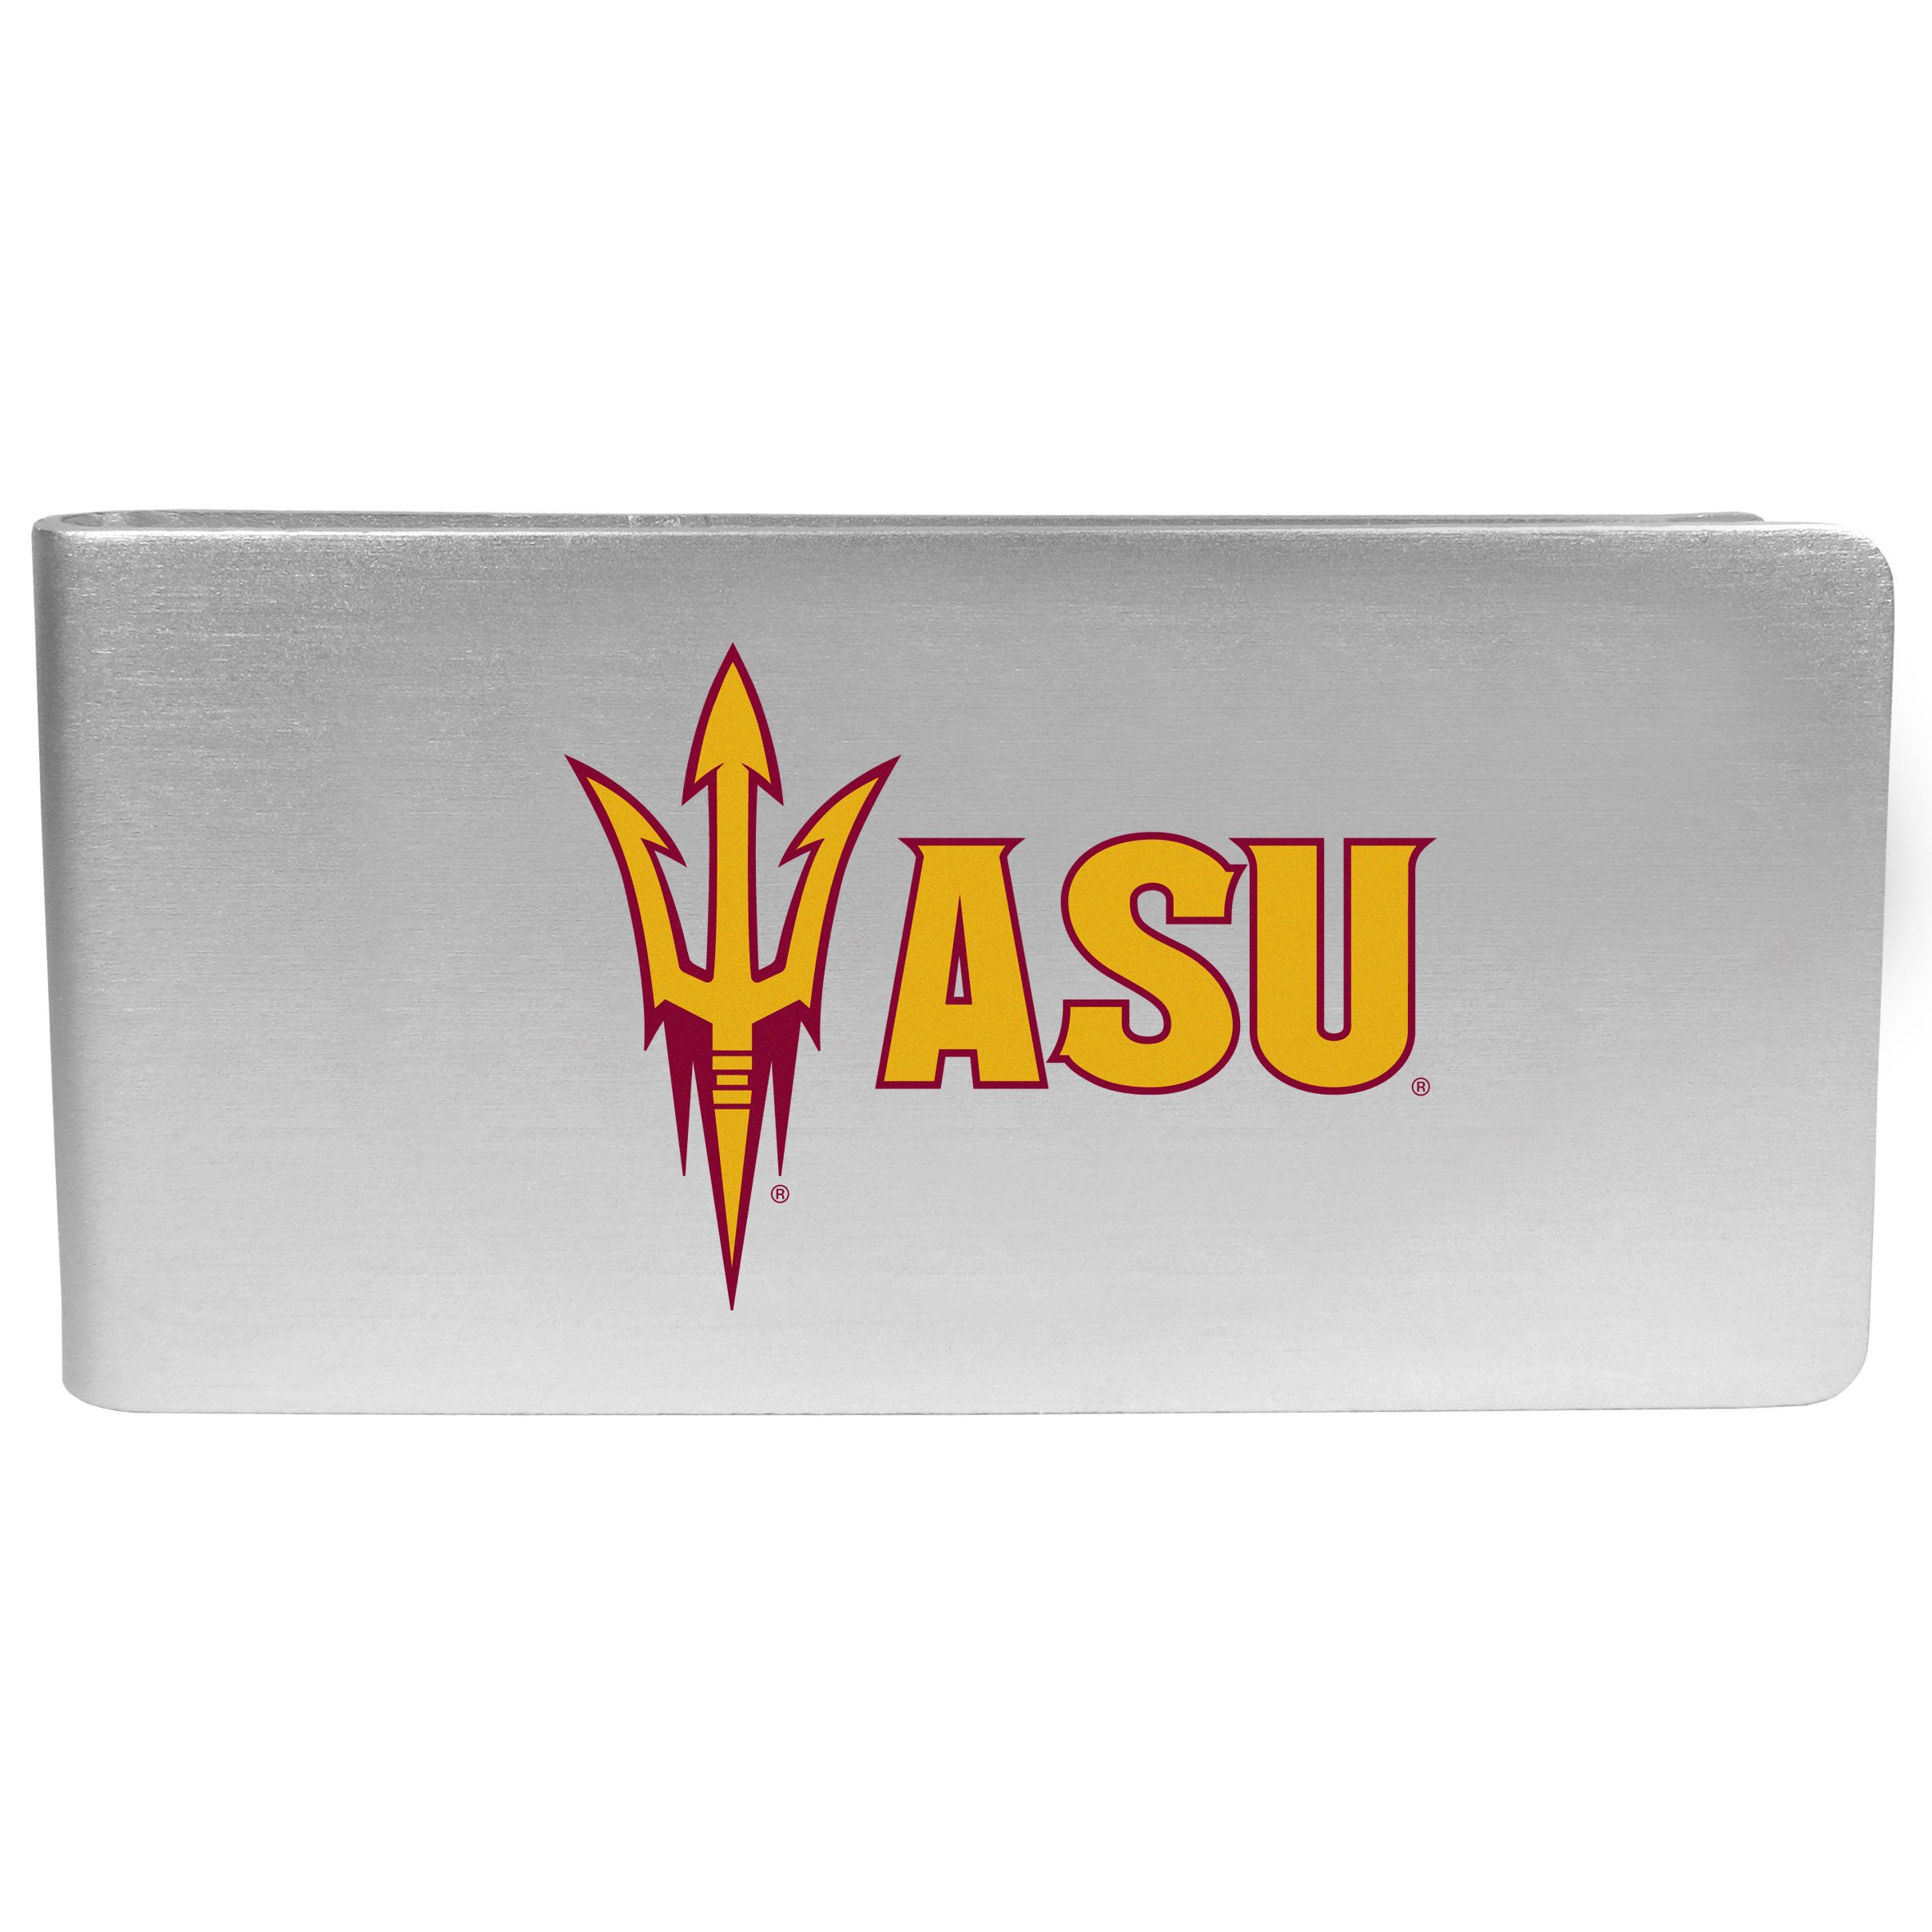 Arizona St. Sun Devils Logo Money Clip - Our brushed metal money clip has classic style and functionality. The attractive clip features the Arizona St. Sun Devils logo expertly printed on front.